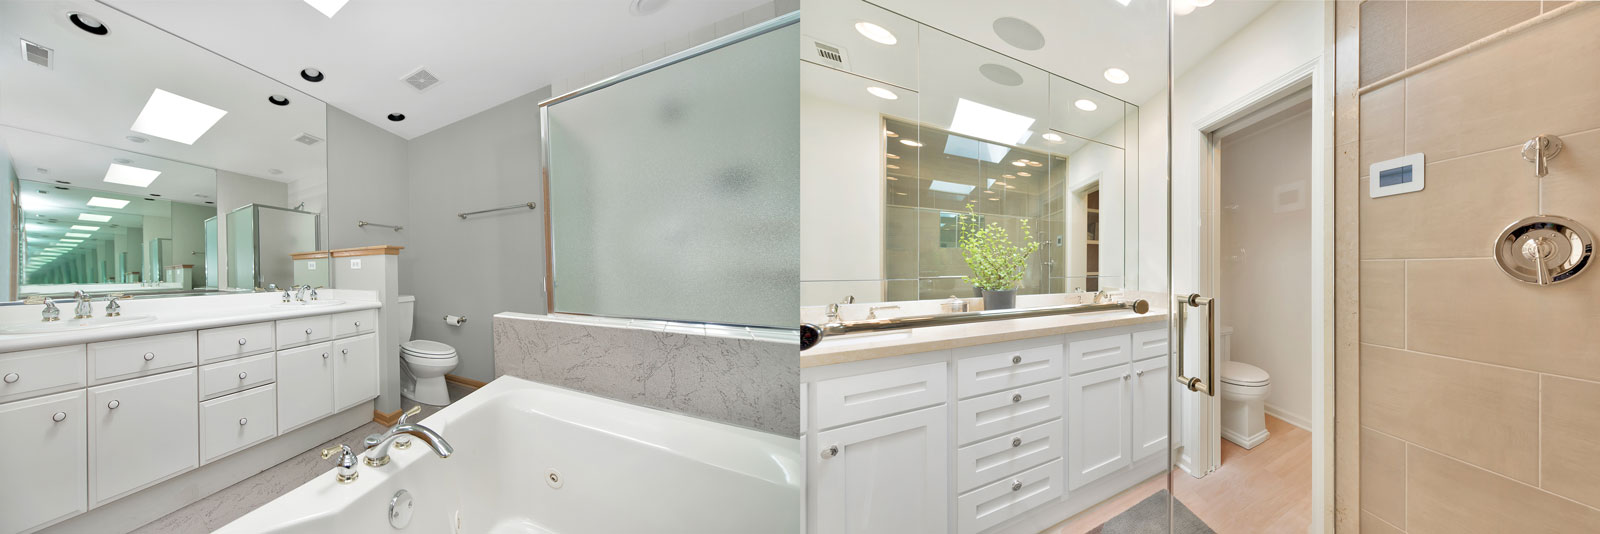 Before & After - Bathroom